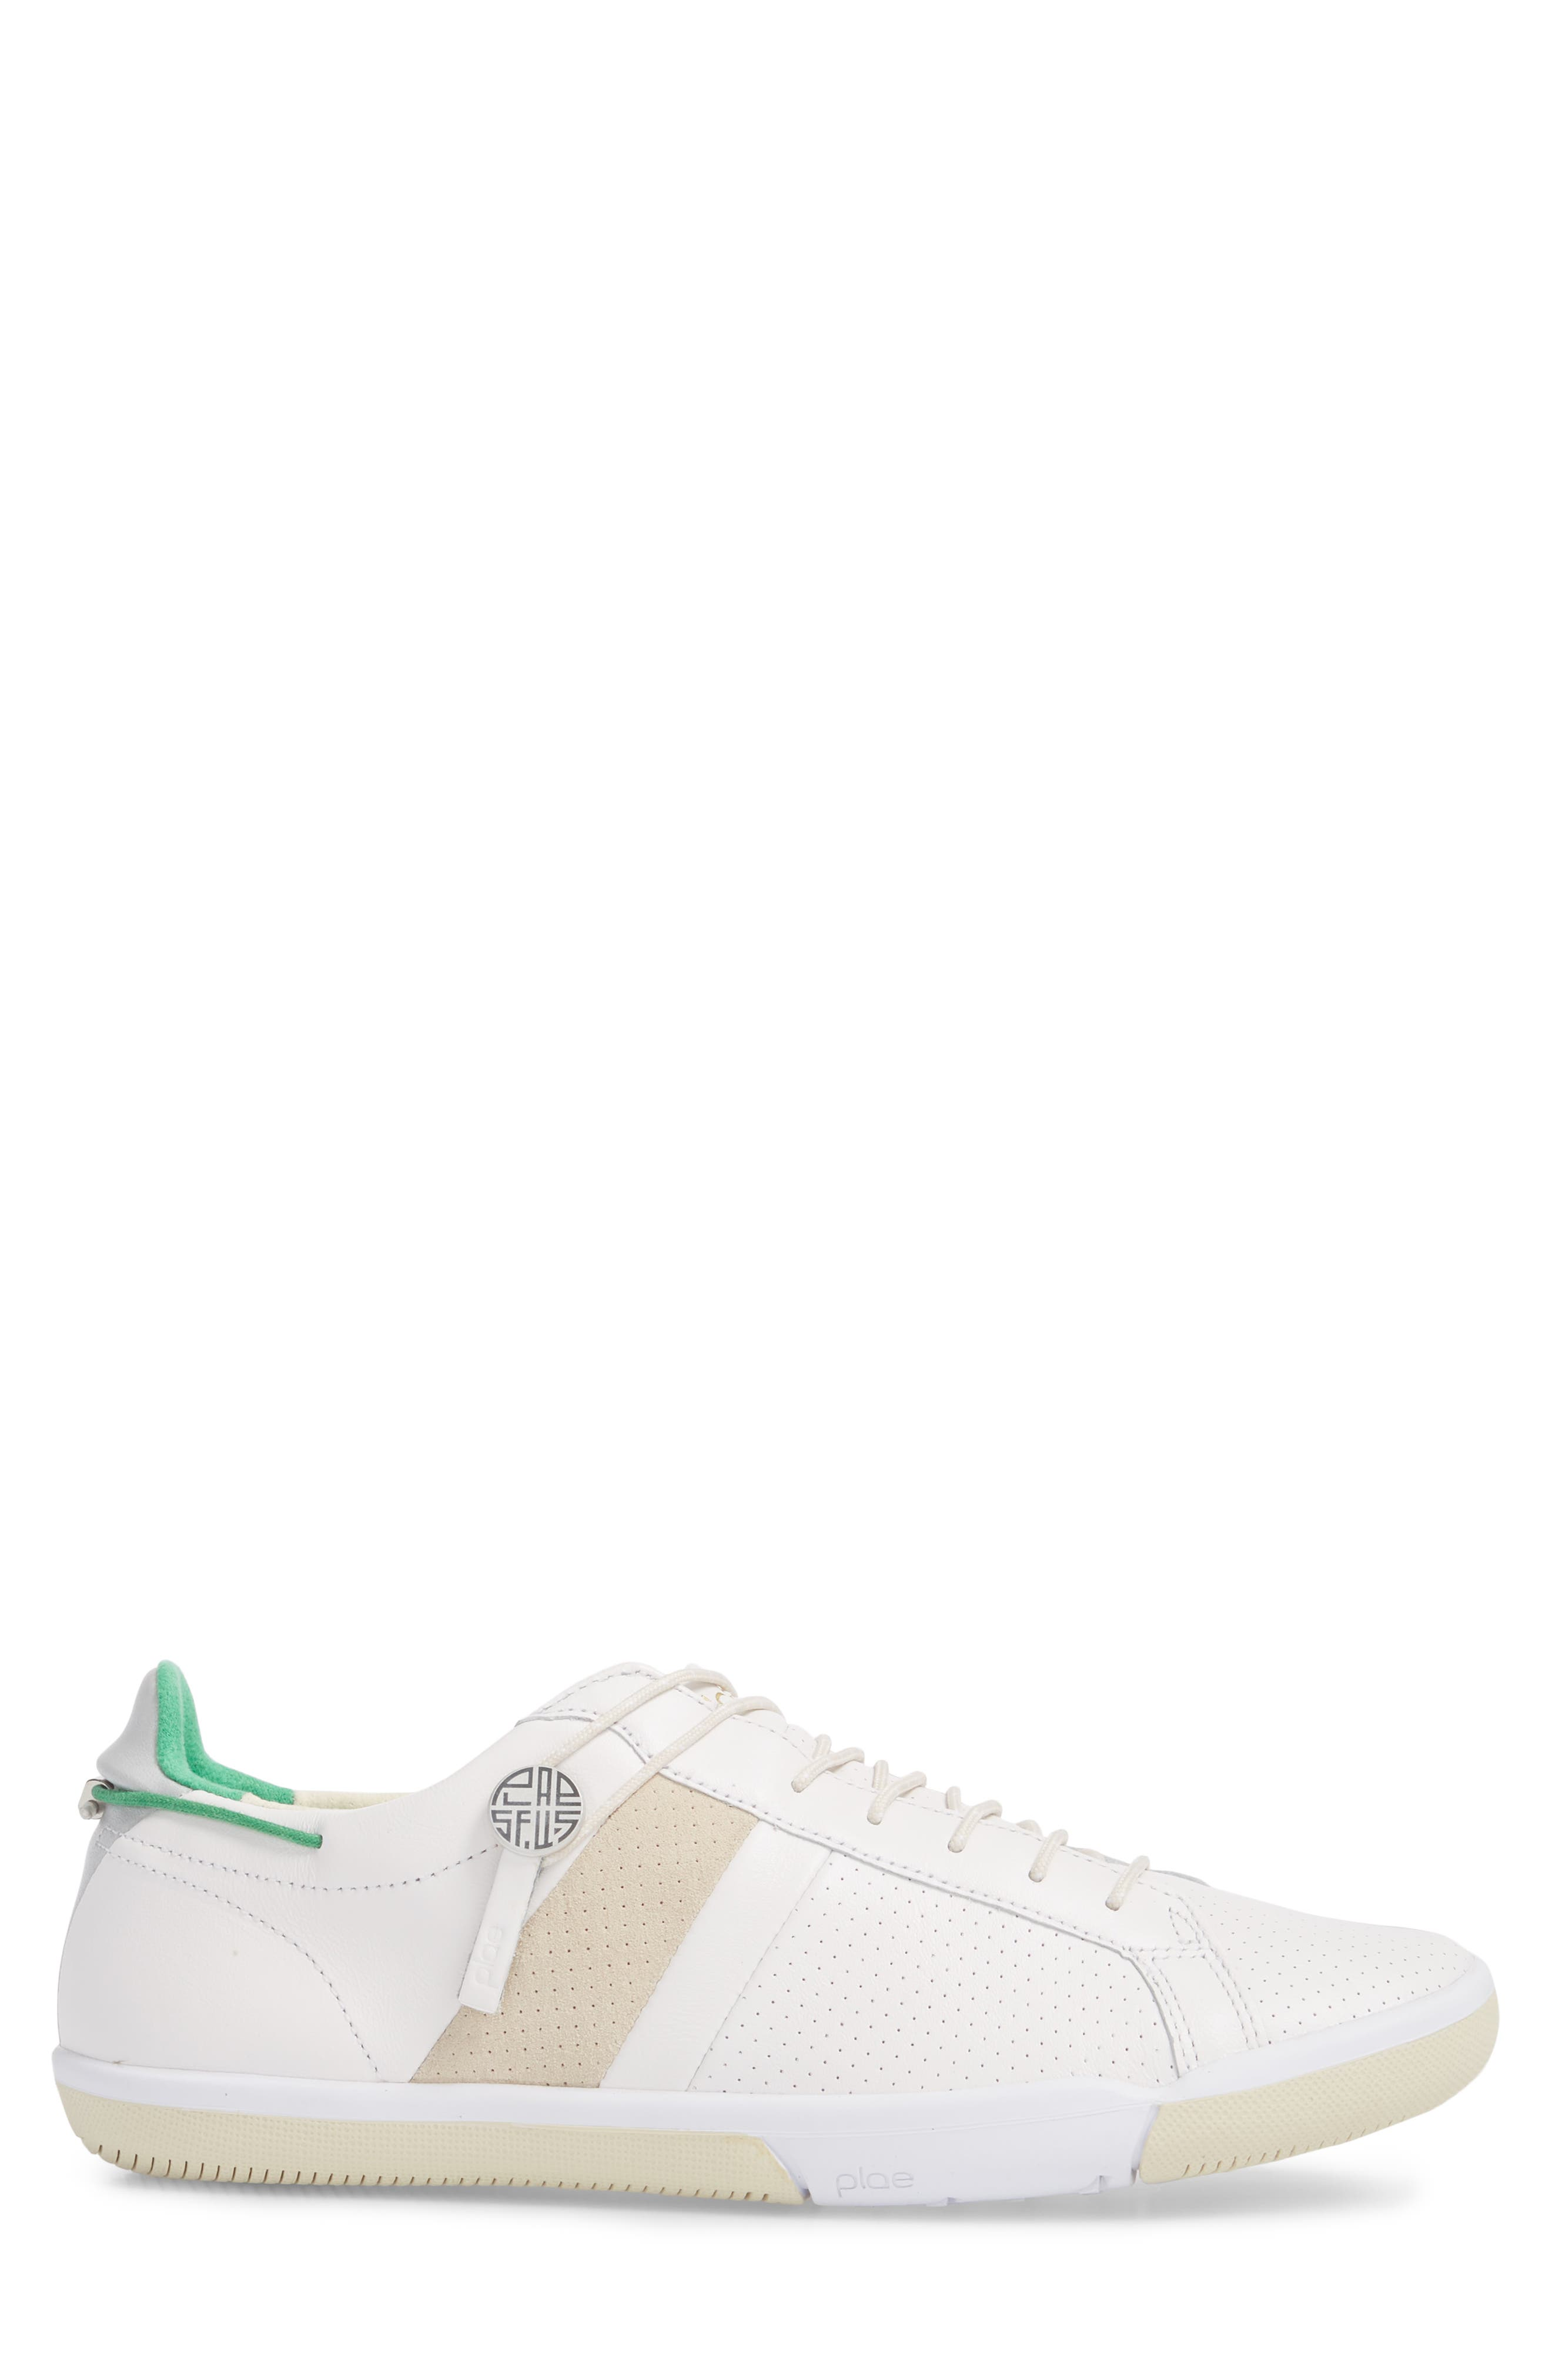 Mulberry Low Top Sneaker,                             Alternate thumbnail 3, color,                             WHITE